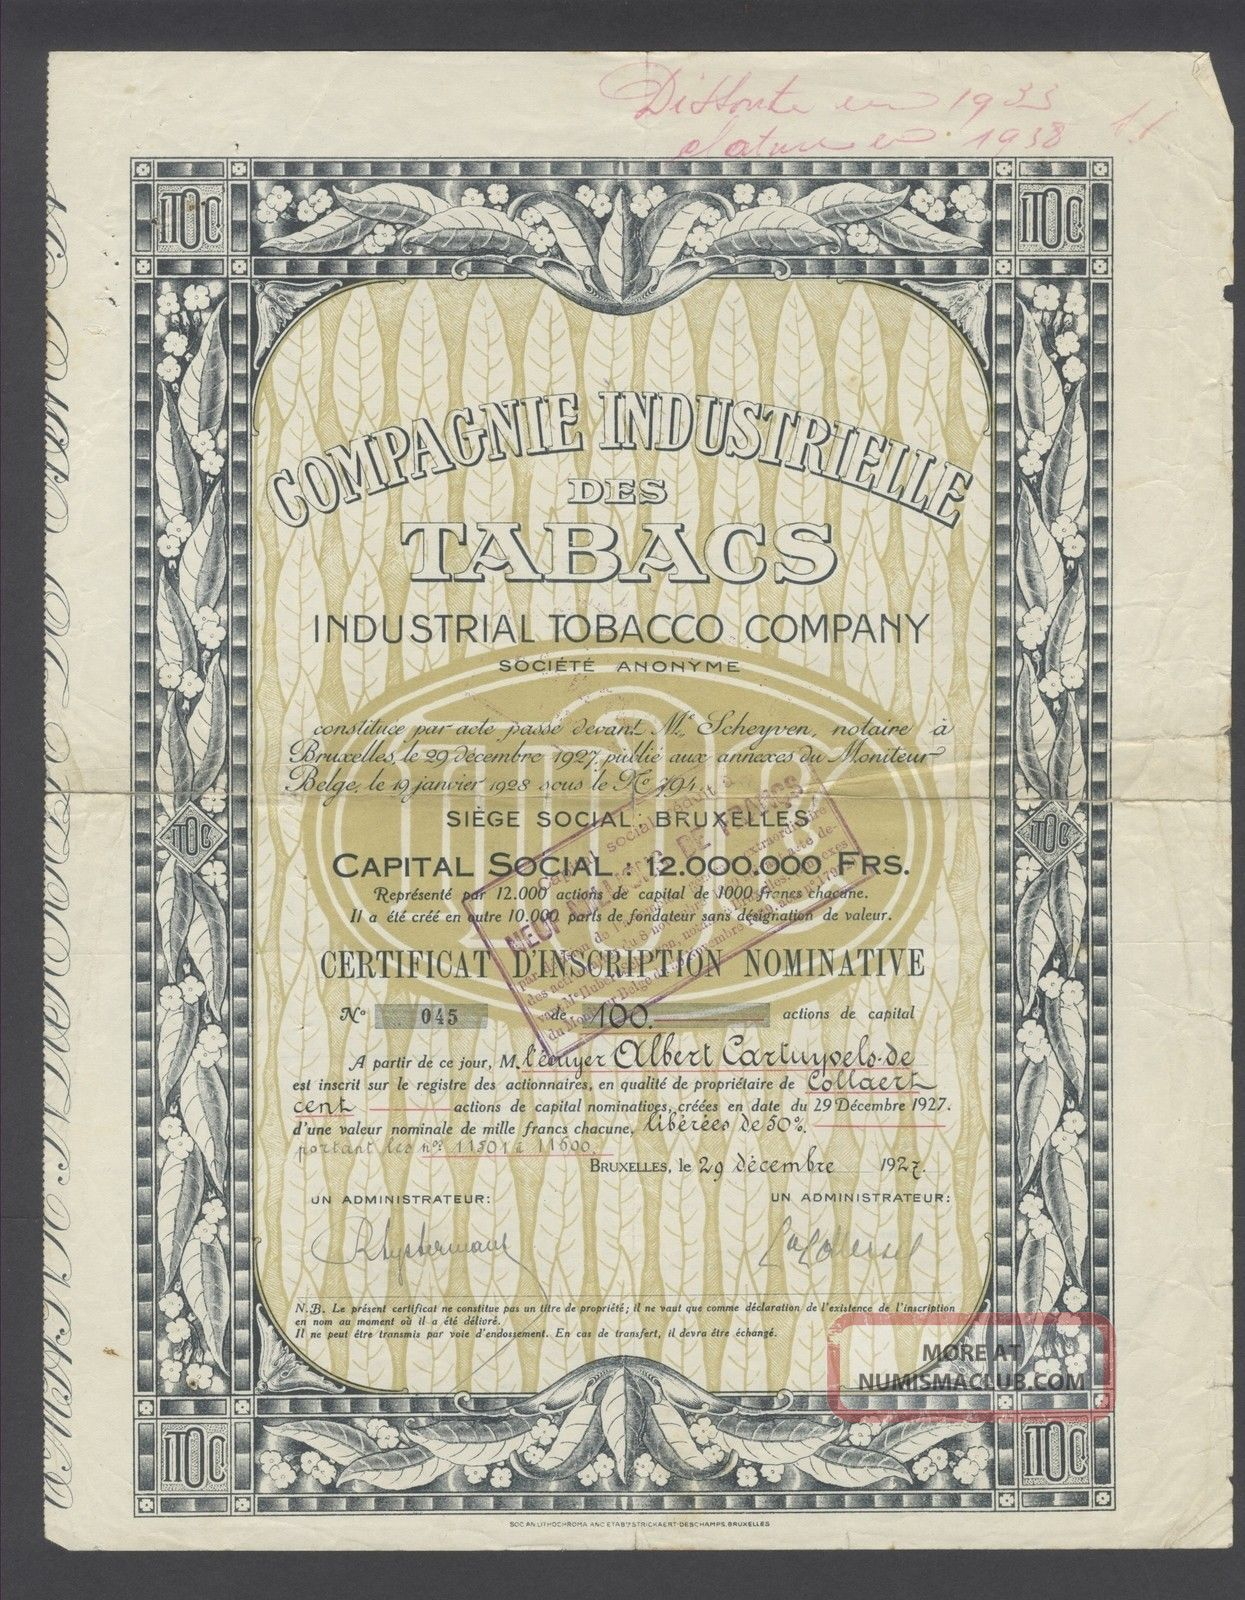 Belgium 1927 Illustrated Bond - Industrial Tobacco Compagnie Bruxelles.  A9772 World photo